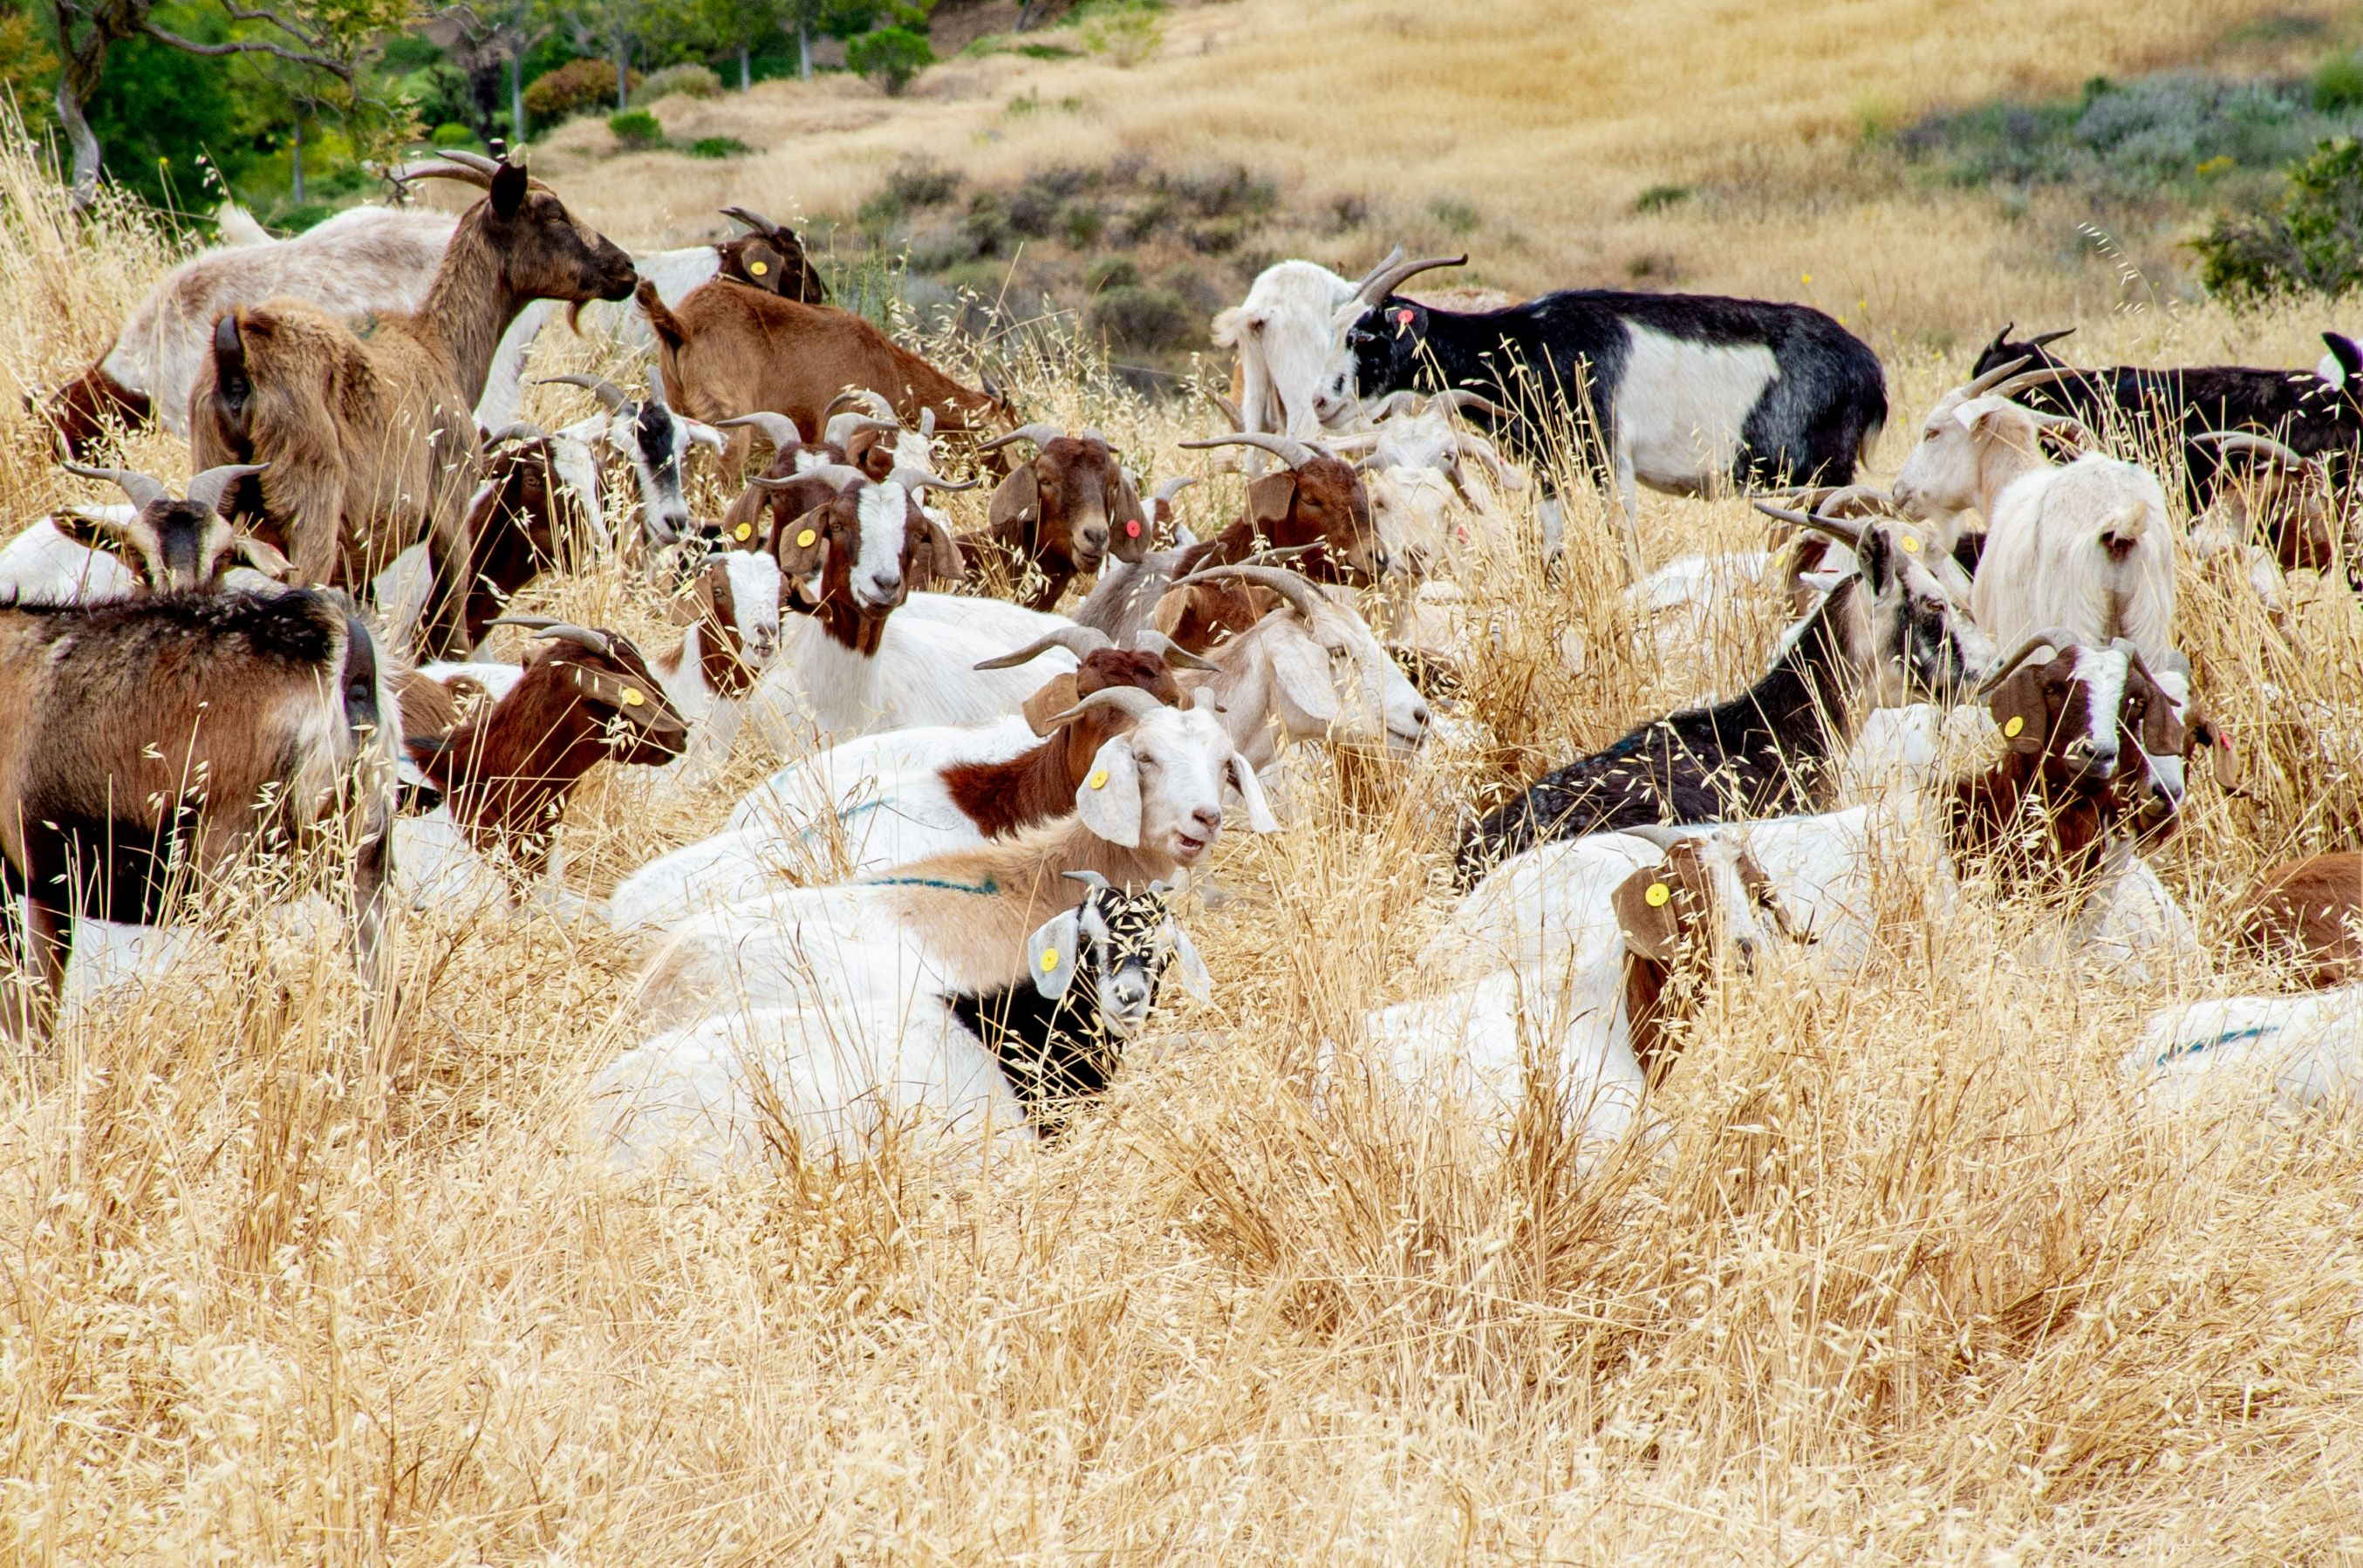 Goats gather in Simi Valley, California